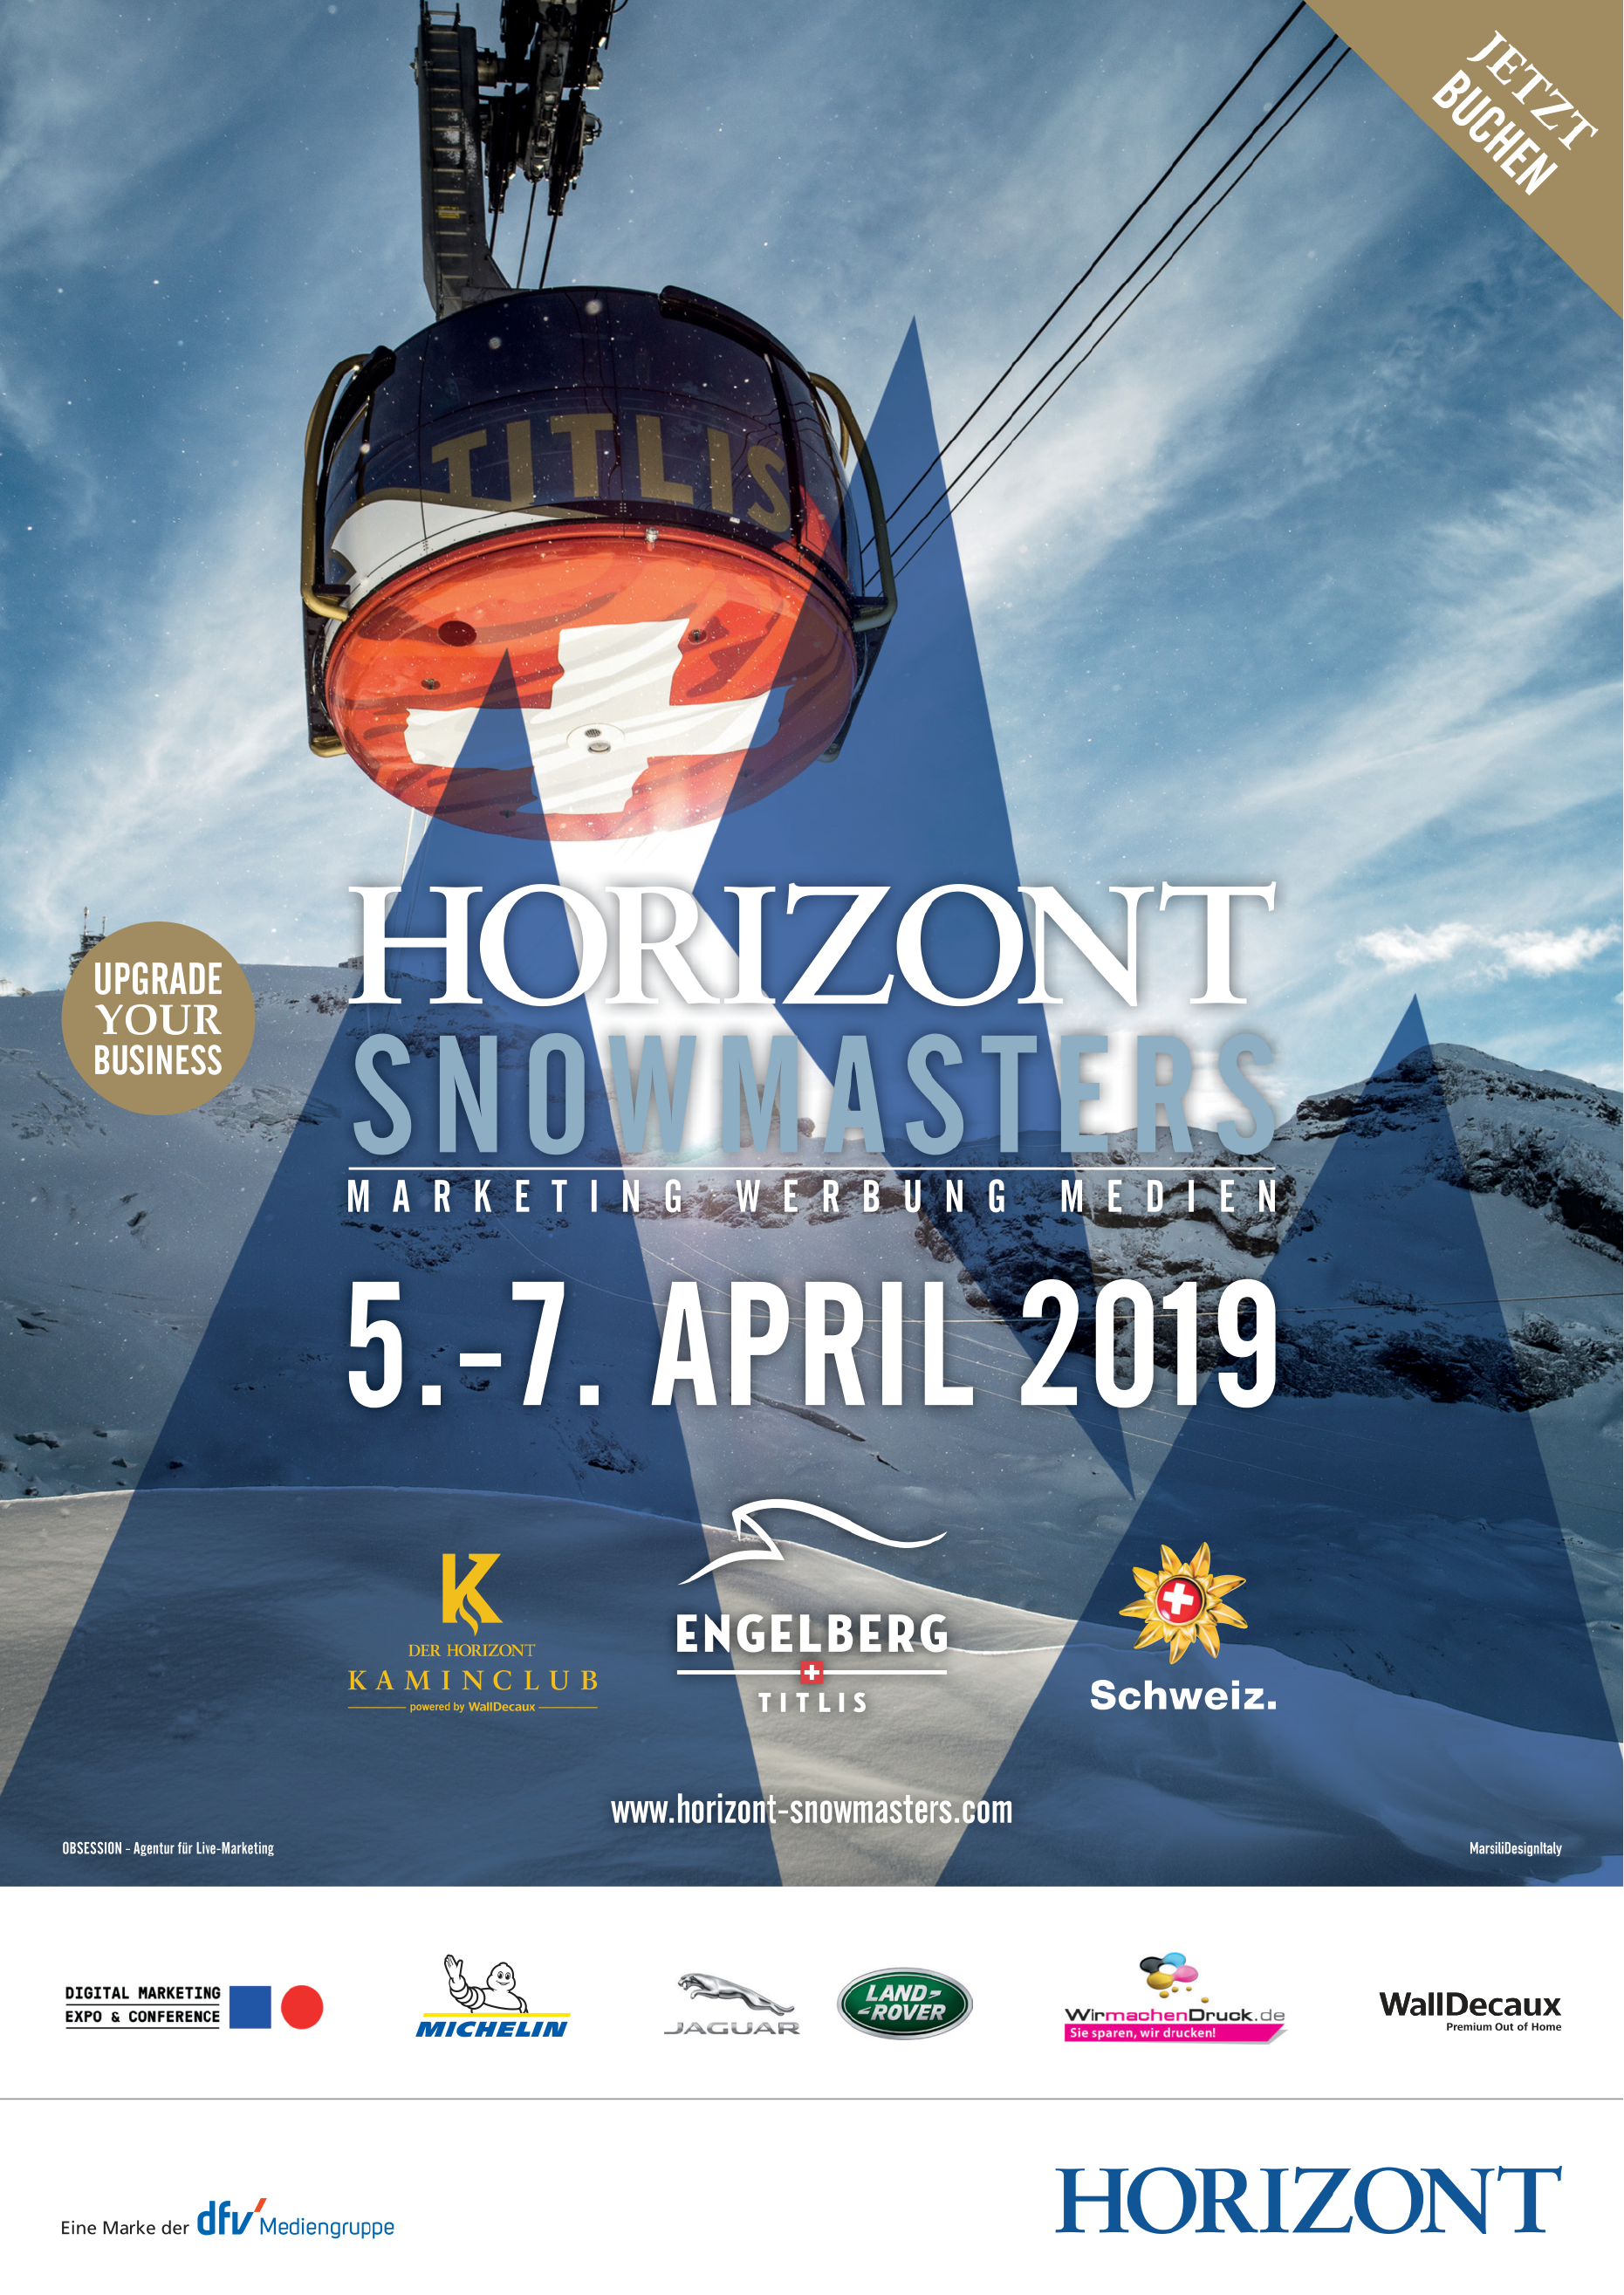 HORIZONT Snowmasters